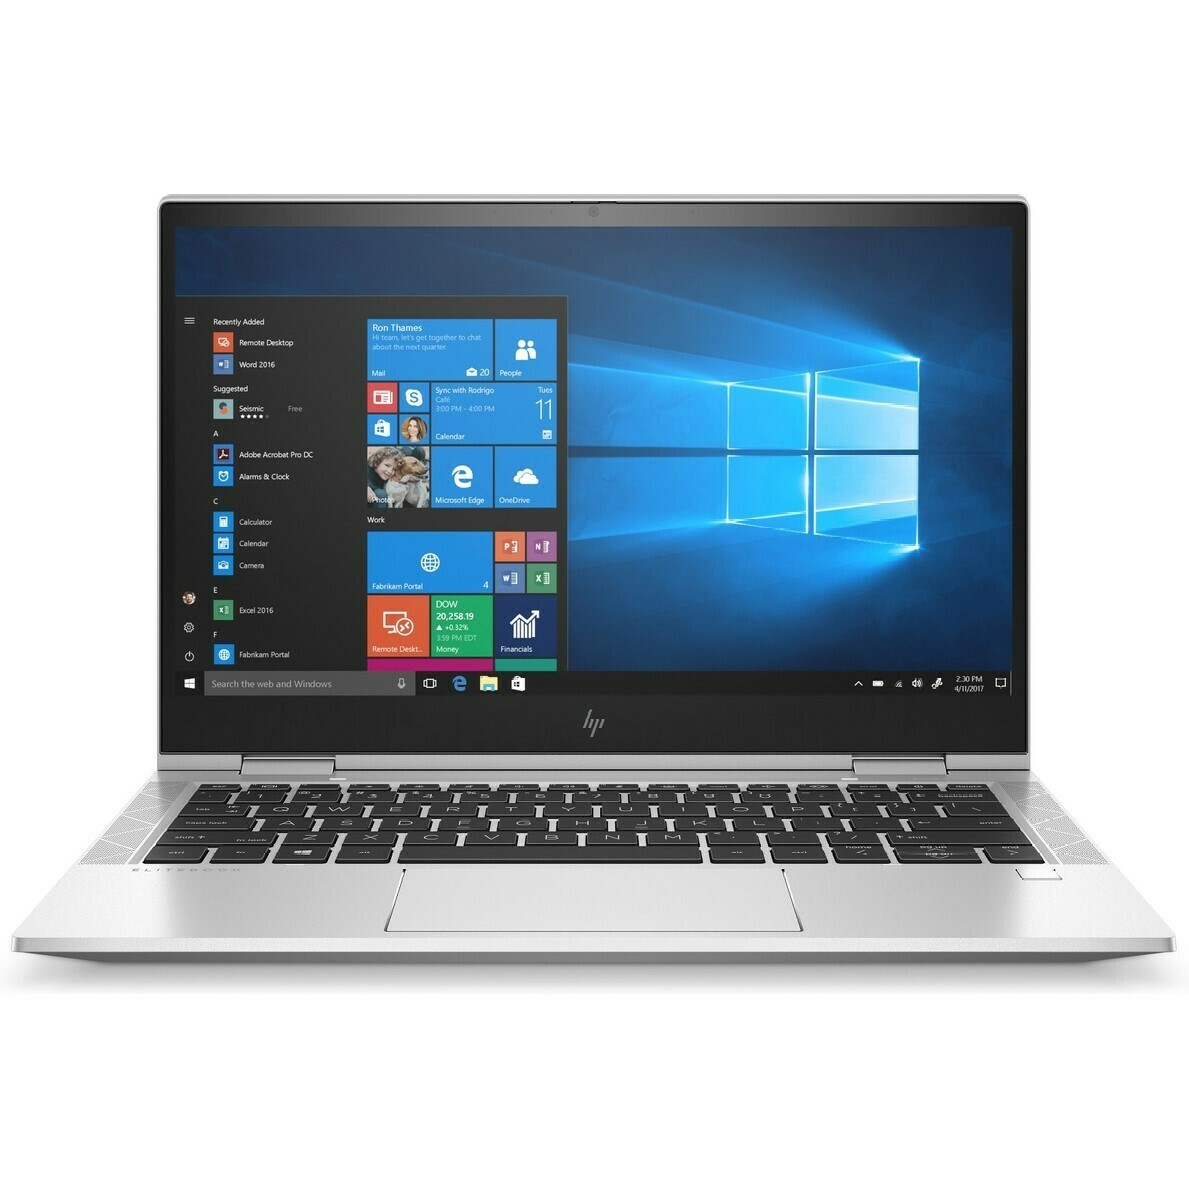 HP EliteBook x360 830 G7 i5 8GB 512GB + 4G